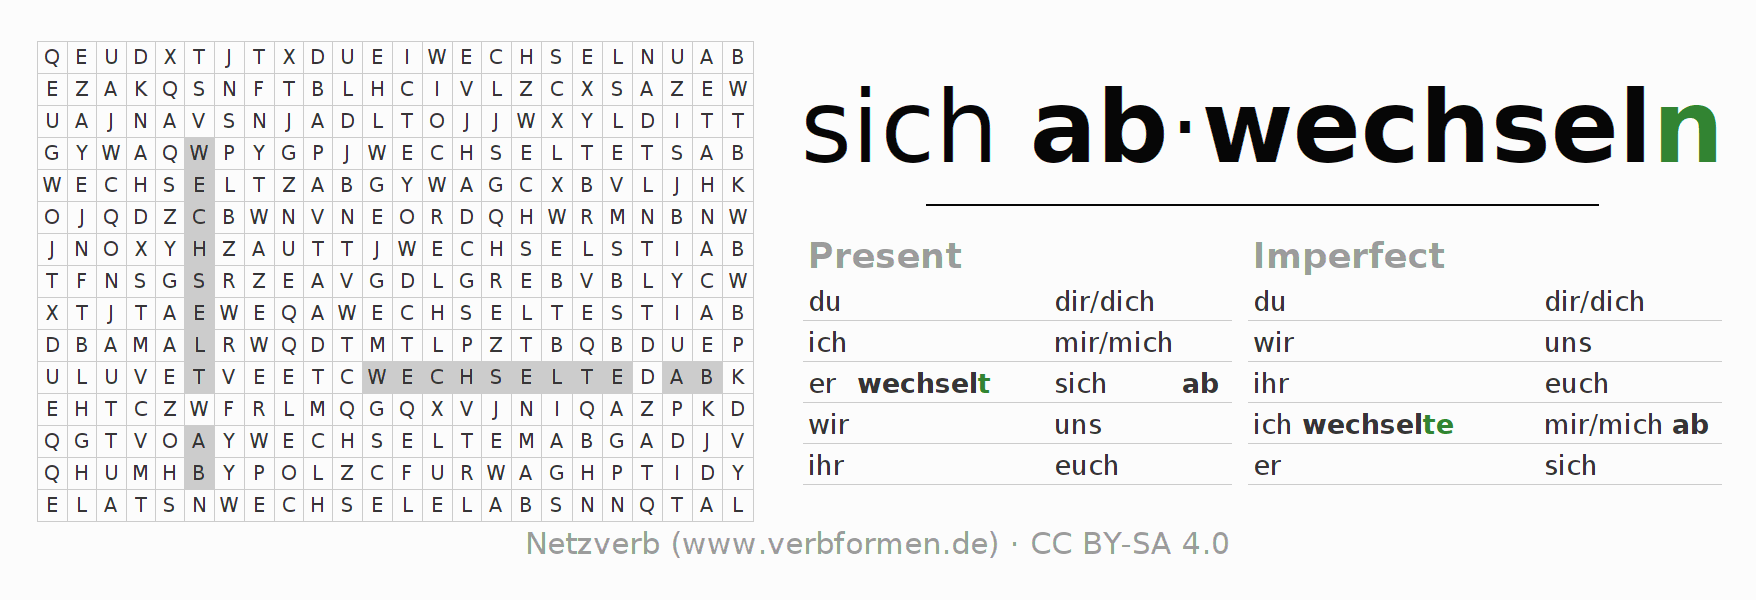 Word search puzzle for the conjugation of the verb sich abwechseln